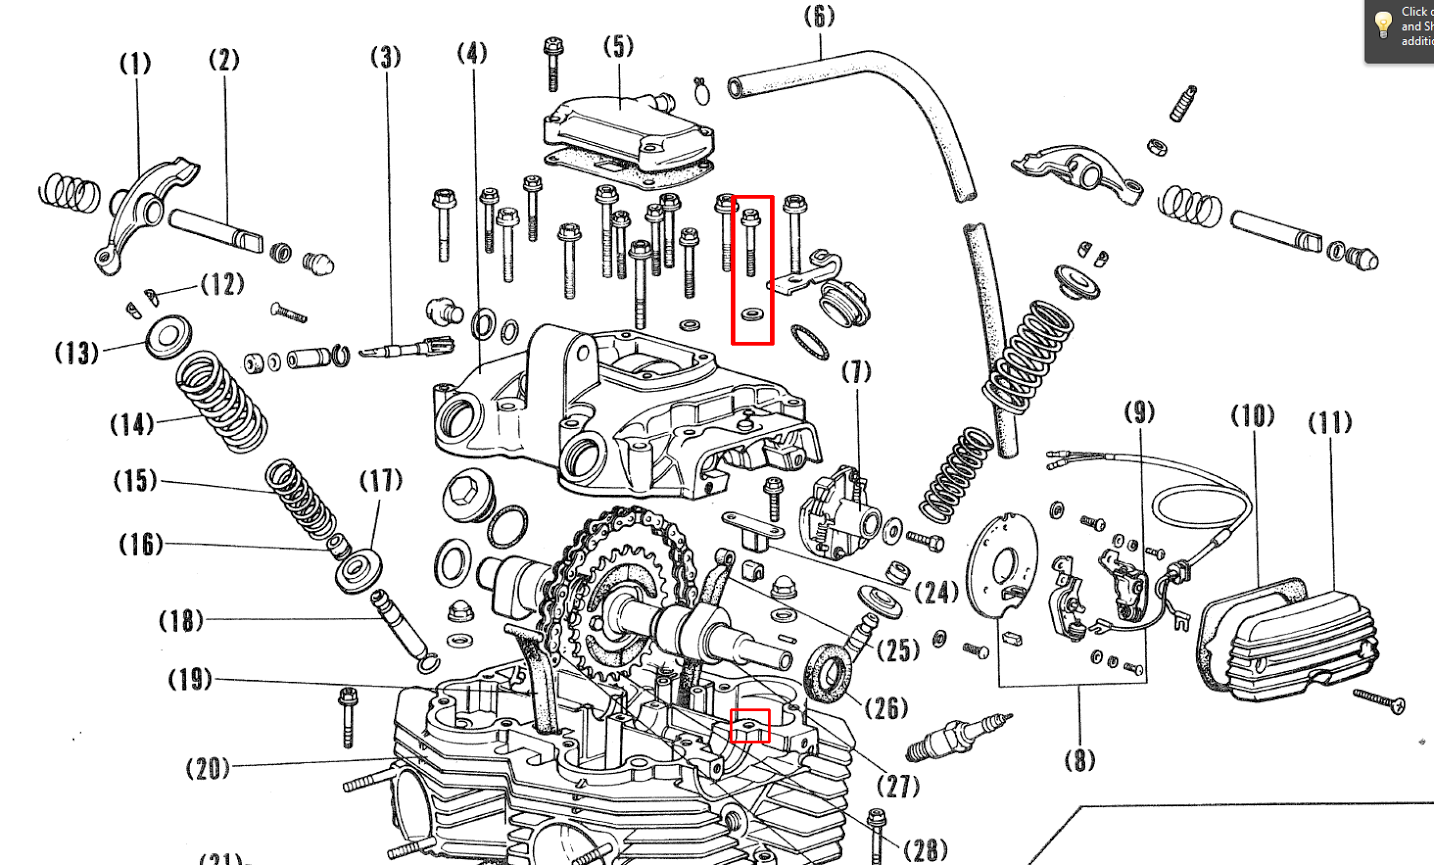 Xs650 Engine Diagram Wiring Yamaha 650 Just Bought A 360 Cam Chain Tensioner And Tuning Questionsjust